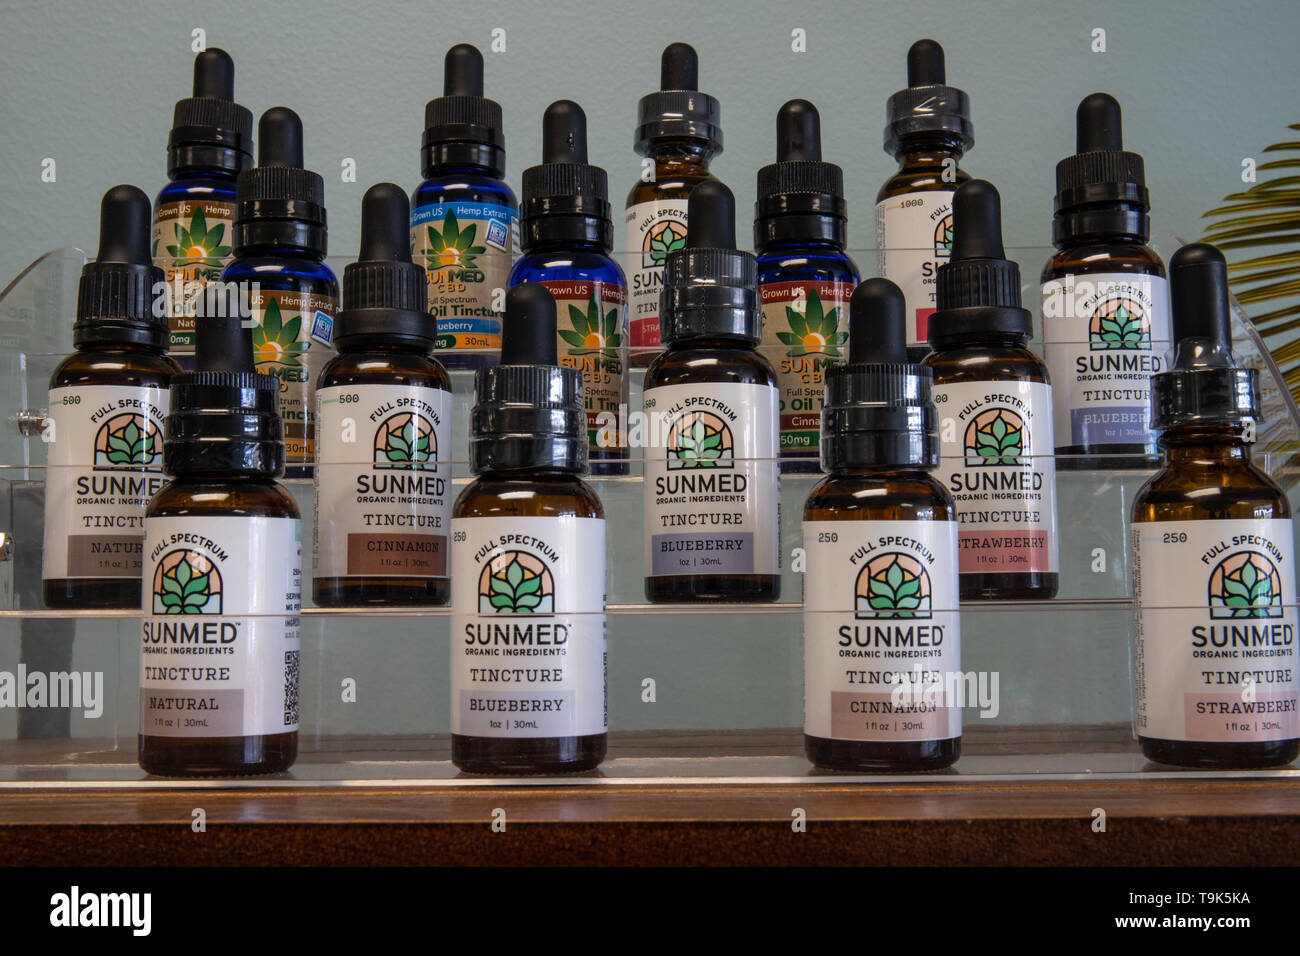 Cannabis Tincture Stock Photos & Cannabis Tincture Stock